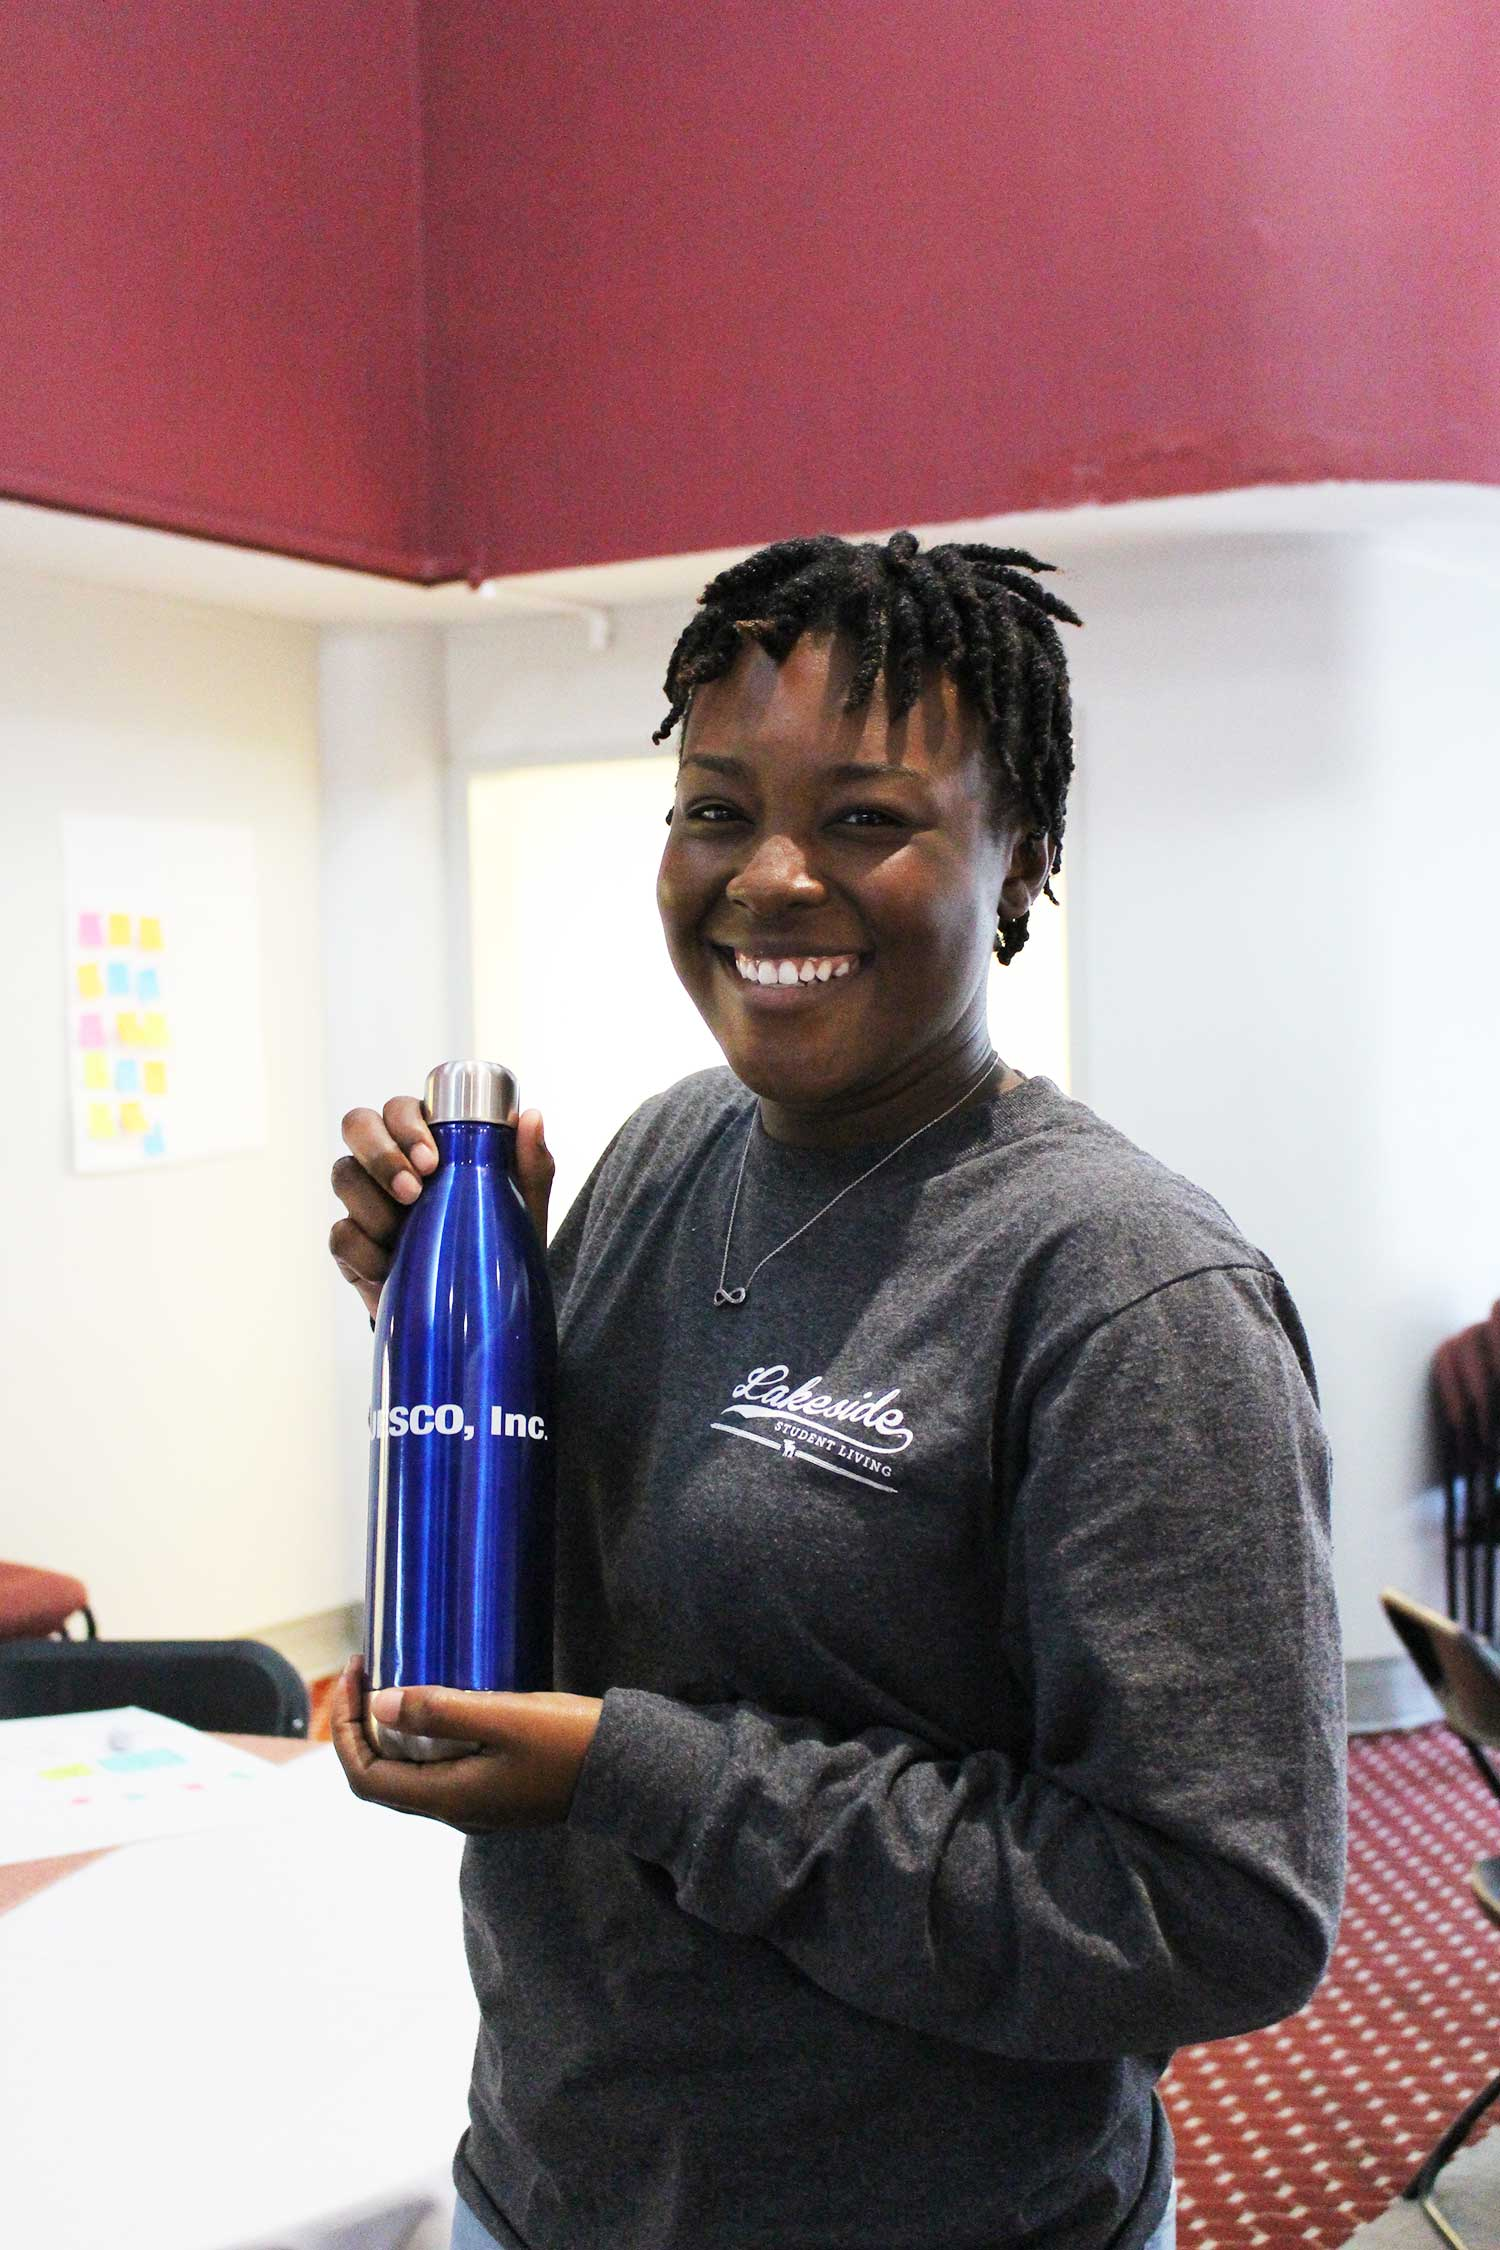 Kenya Thompson, smiling, displays blue water bottle with JESCO on it